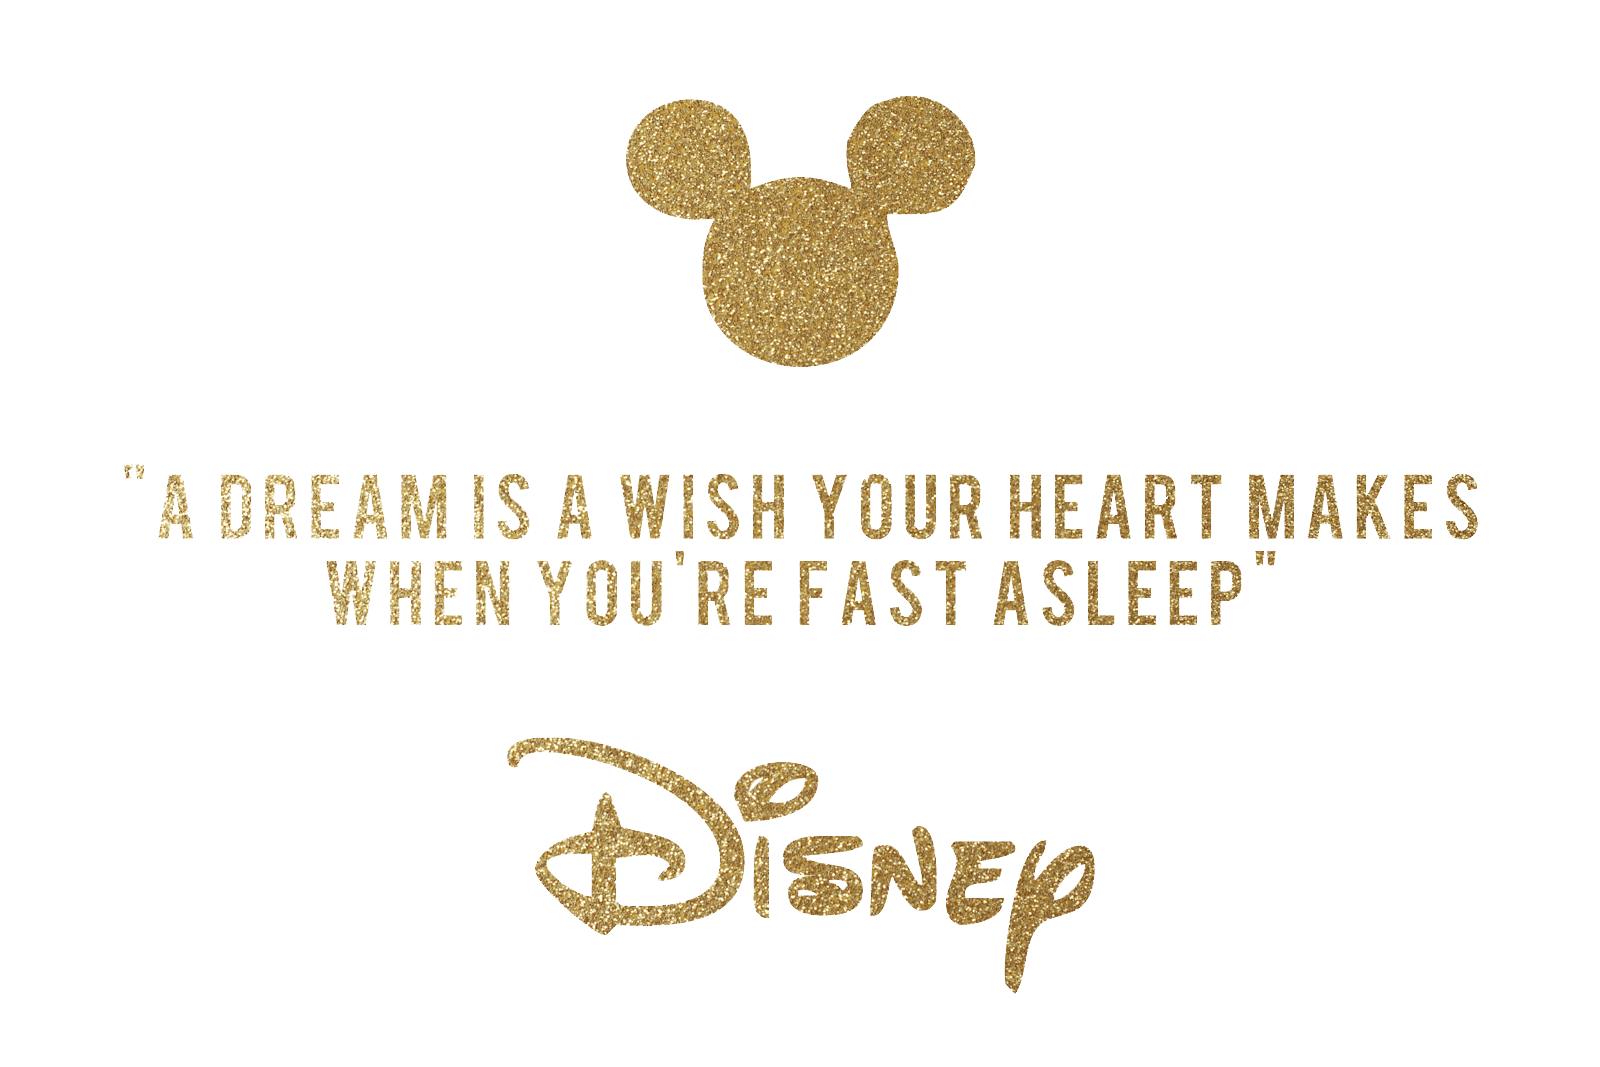 We're Going to DISNEYLAND! A Dream Is A Wish Your Heart Makes Images